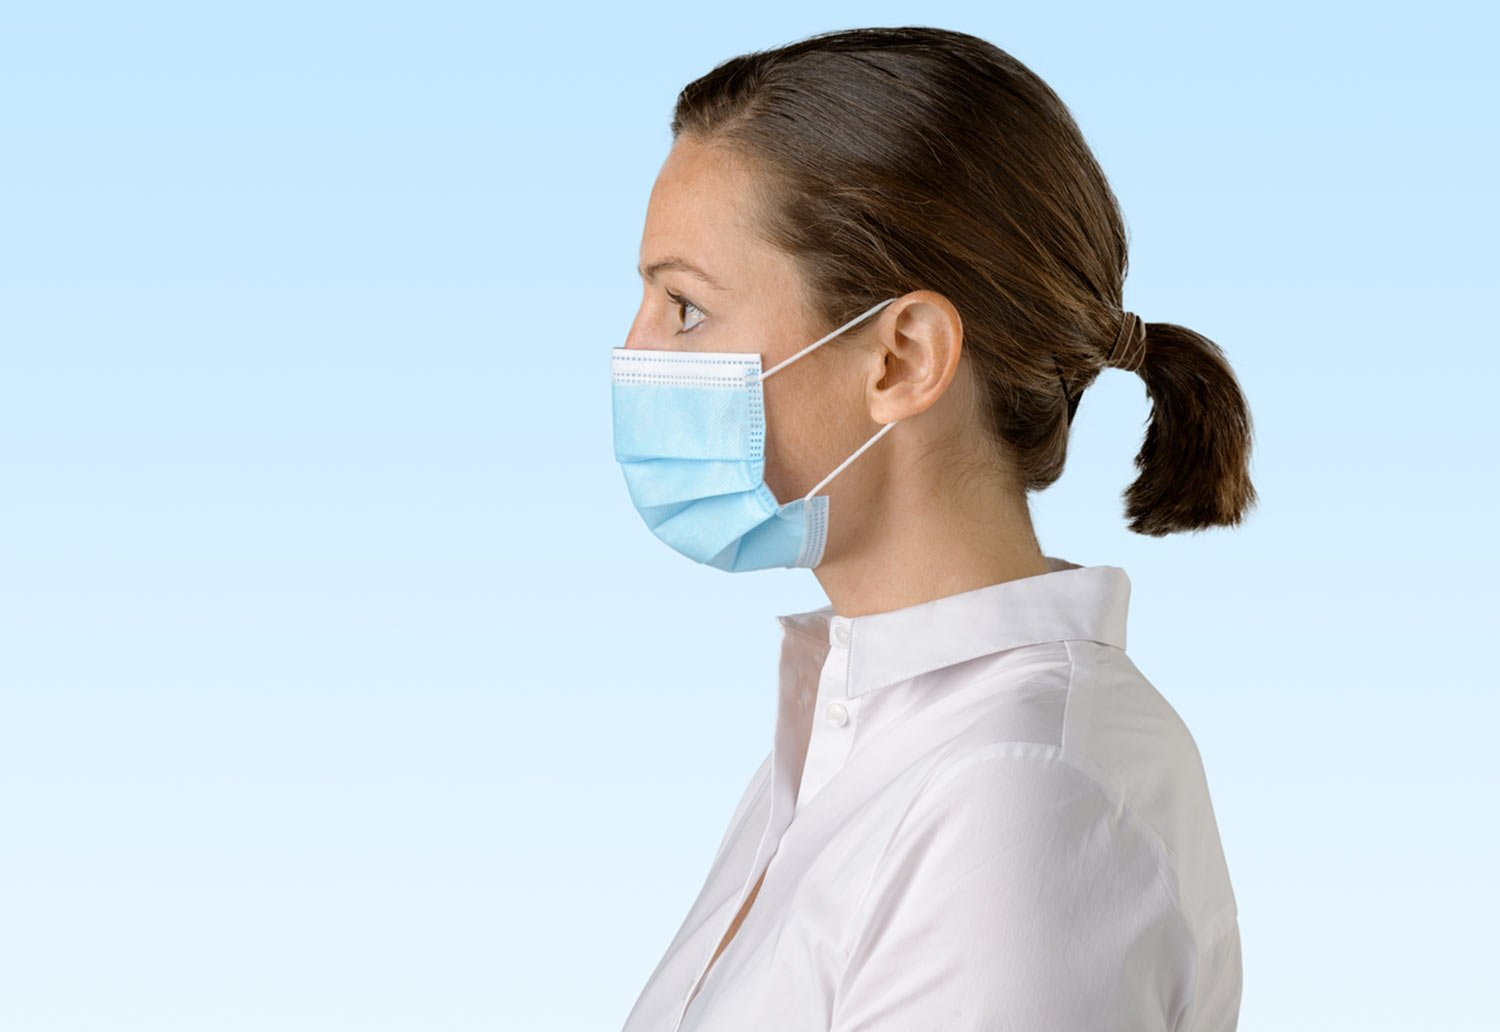 Image of person wearing a Detmold Medical face masks